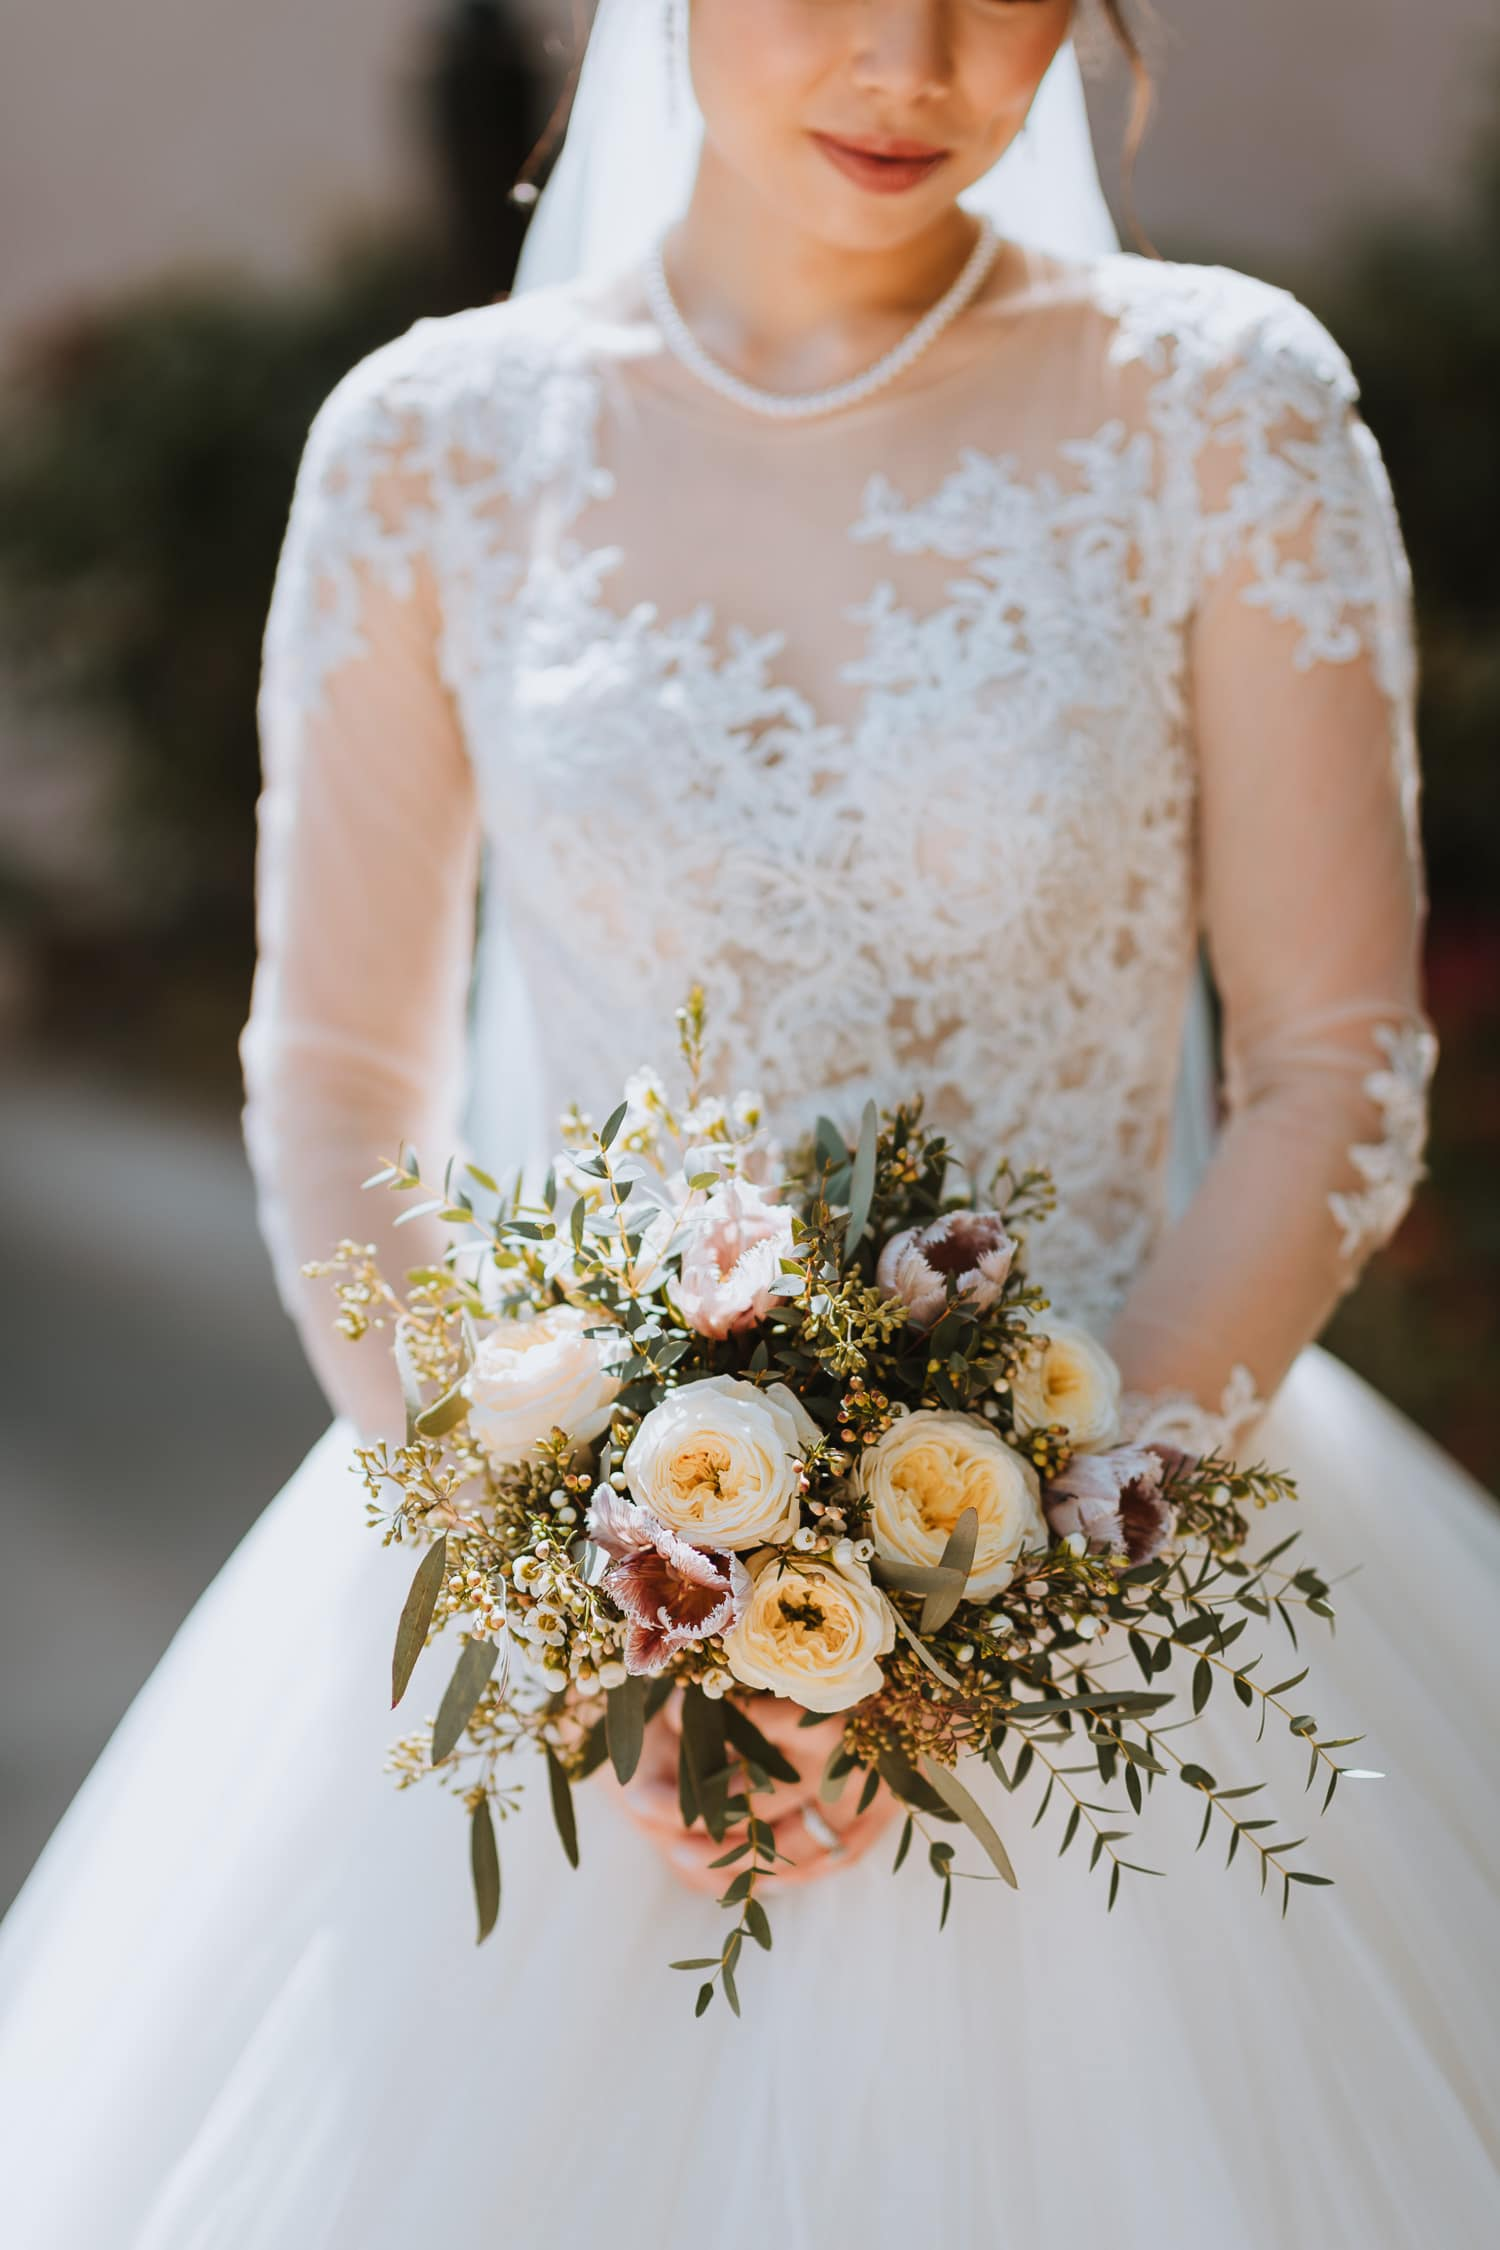 Whimsical Bride Bouquet